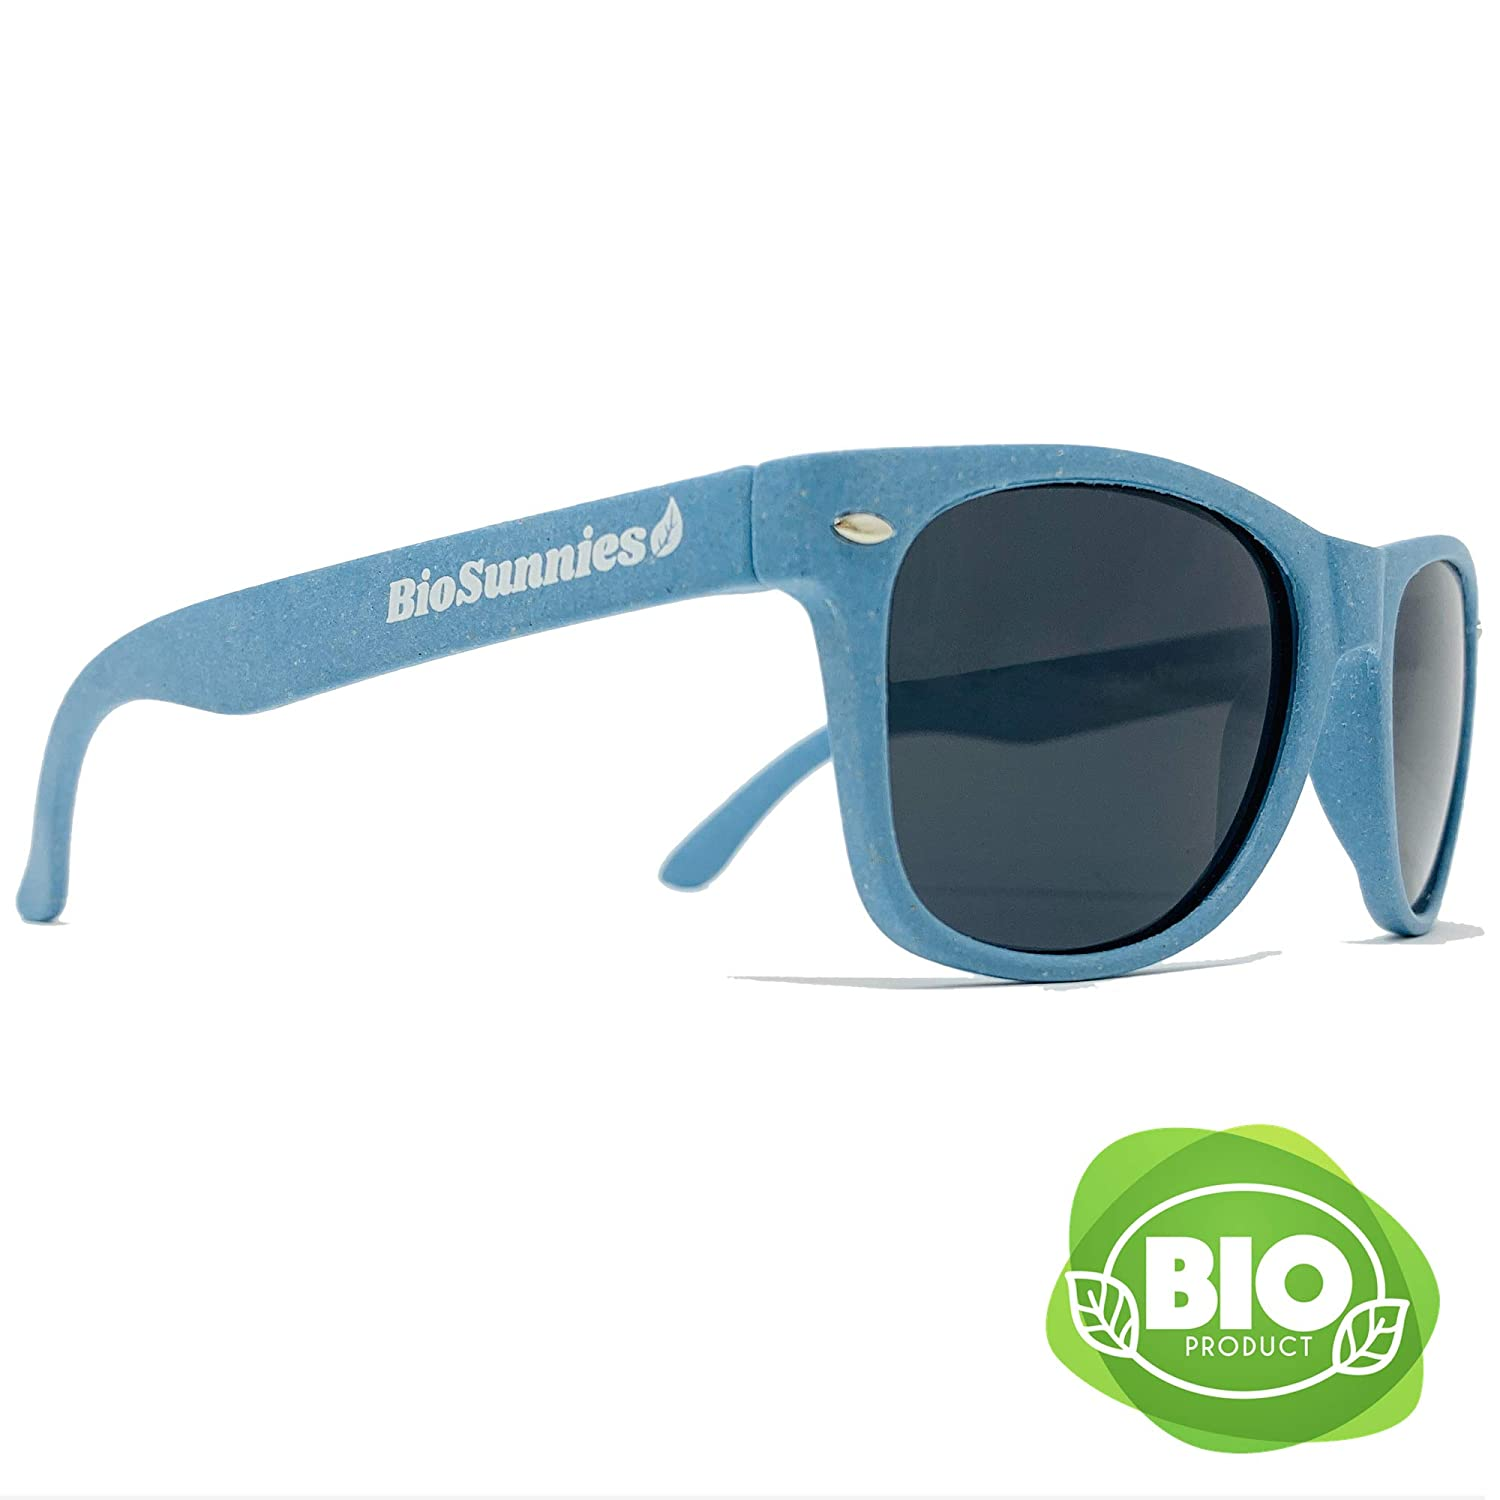 3 to 9 years BioSunnies Kids Biodegradeable Sunglasses for Boys and Girls with Polarised Lenses